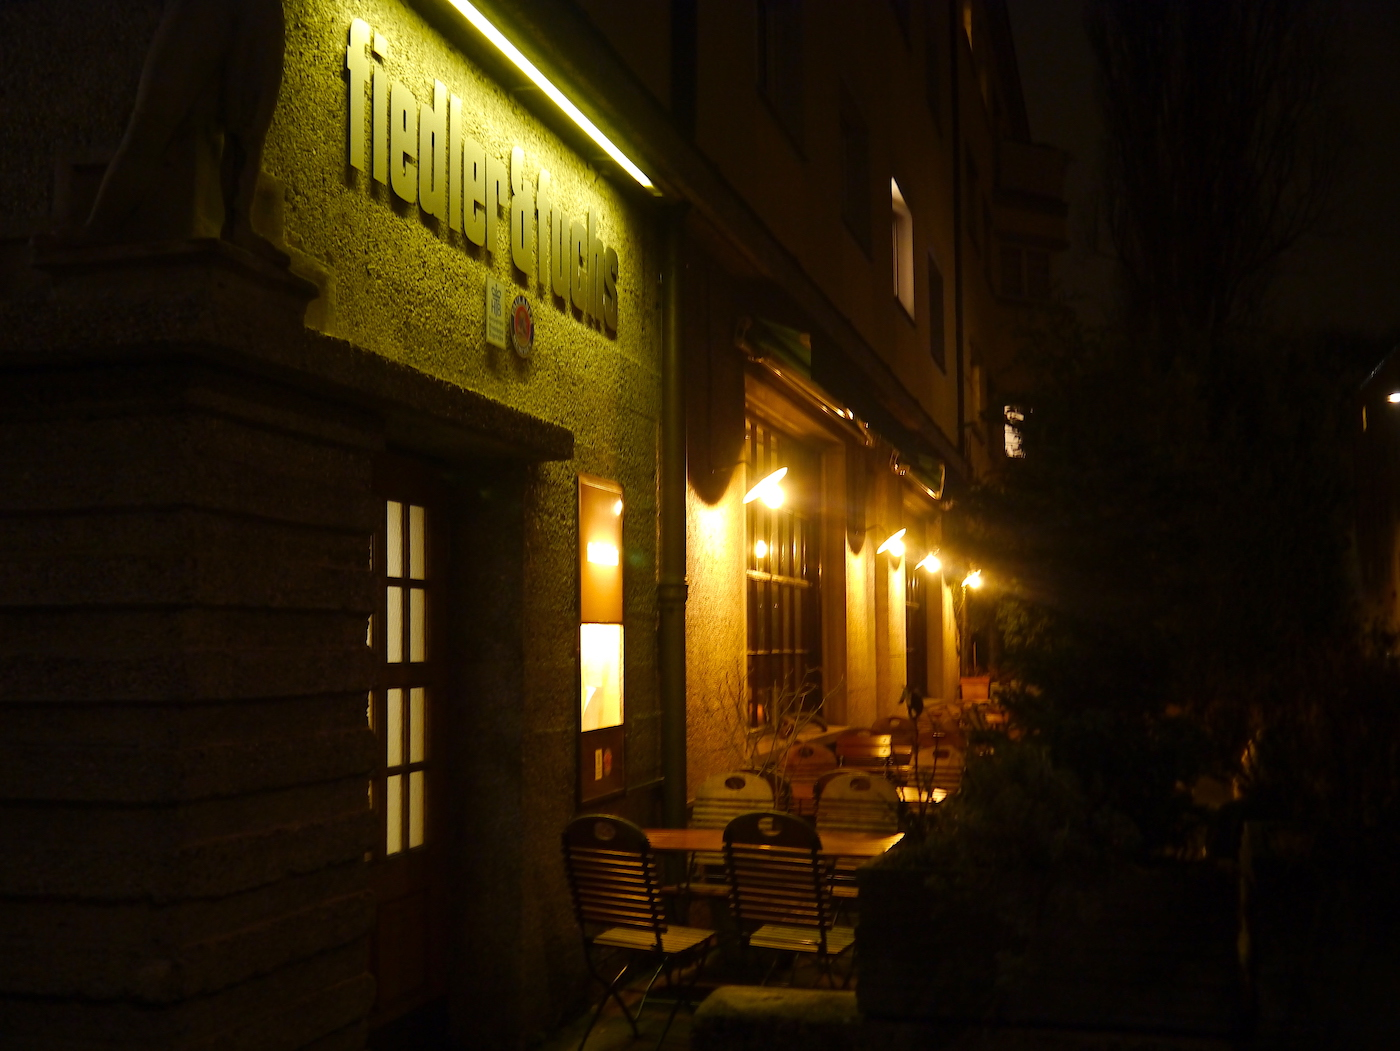 Fiedler & Fuchs, Best restaurants in Munich